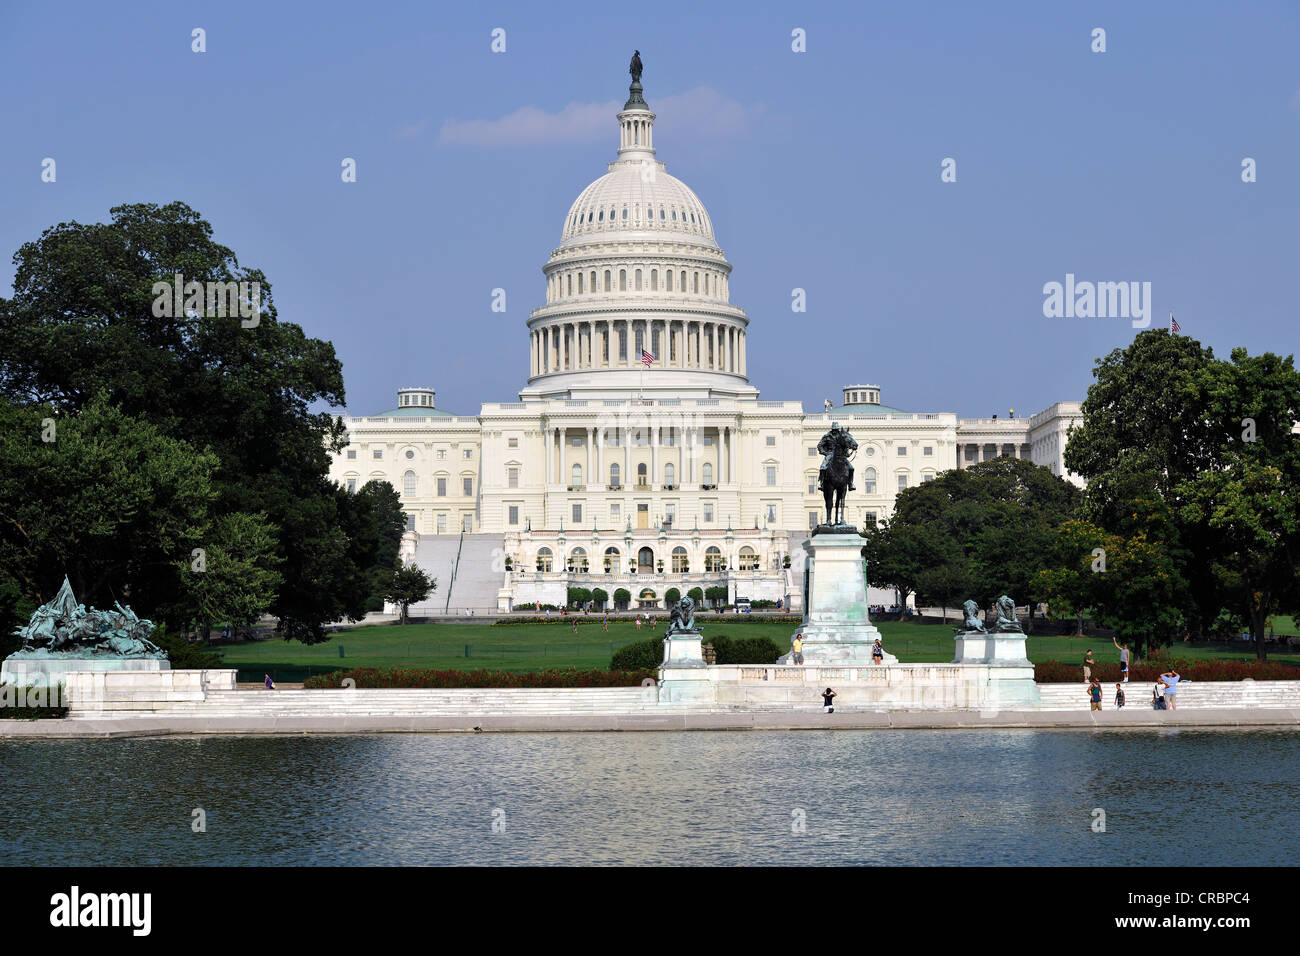 Reflecting Pool, east view, United States Capitol, Capitol Hill, Washington DC, District of Columbia, United States - Stock Image